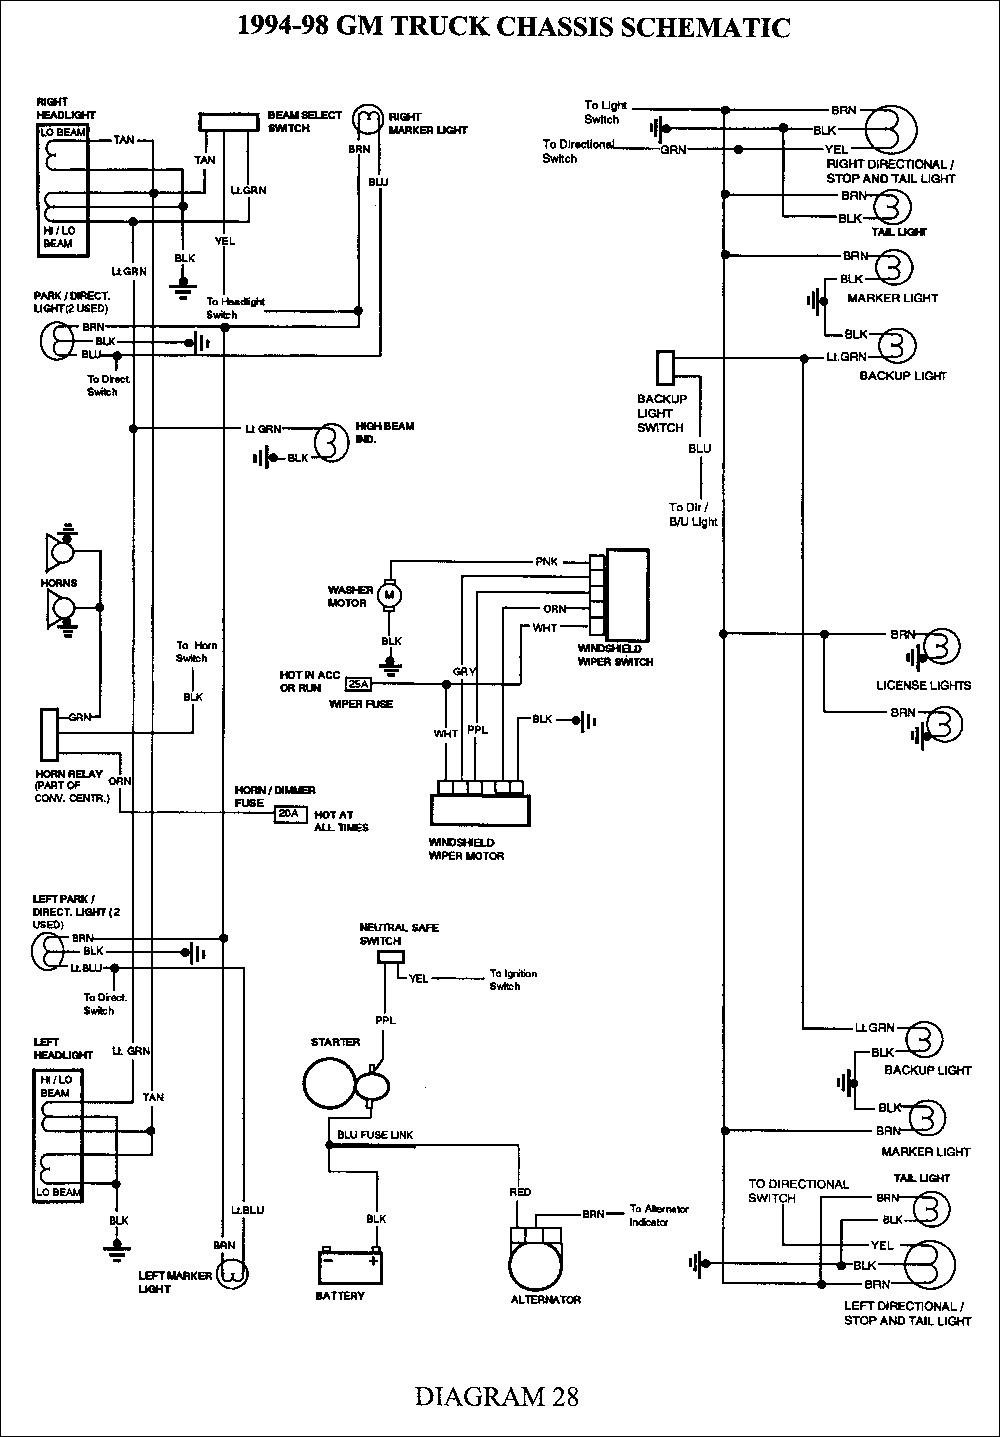 1977 Chevy Tail Light Wiring Diagram - Wiring Diagram Options on 2004 range rover radiator, home wiring diagram, 2004 range rover headlight conversion, 2004 range rover engine, 2004 range rover seats, land rover wiring diagram, 2004 range rover fuel system, 2004 range rover neutral safety switch, 2004 range rover oil filter, 2004 range rover suspension, range rover suspension wiring diagram, 2004 range rover transmission, 2004 range rover tires, 2004 range rover oil leak, 2004 range rover parts, 2004 range rover belt diagram, 2004 range rover maintenance, 2003 range rover wiring diagram, 2004 range rover specifications, 2004 range rover interior diagram,